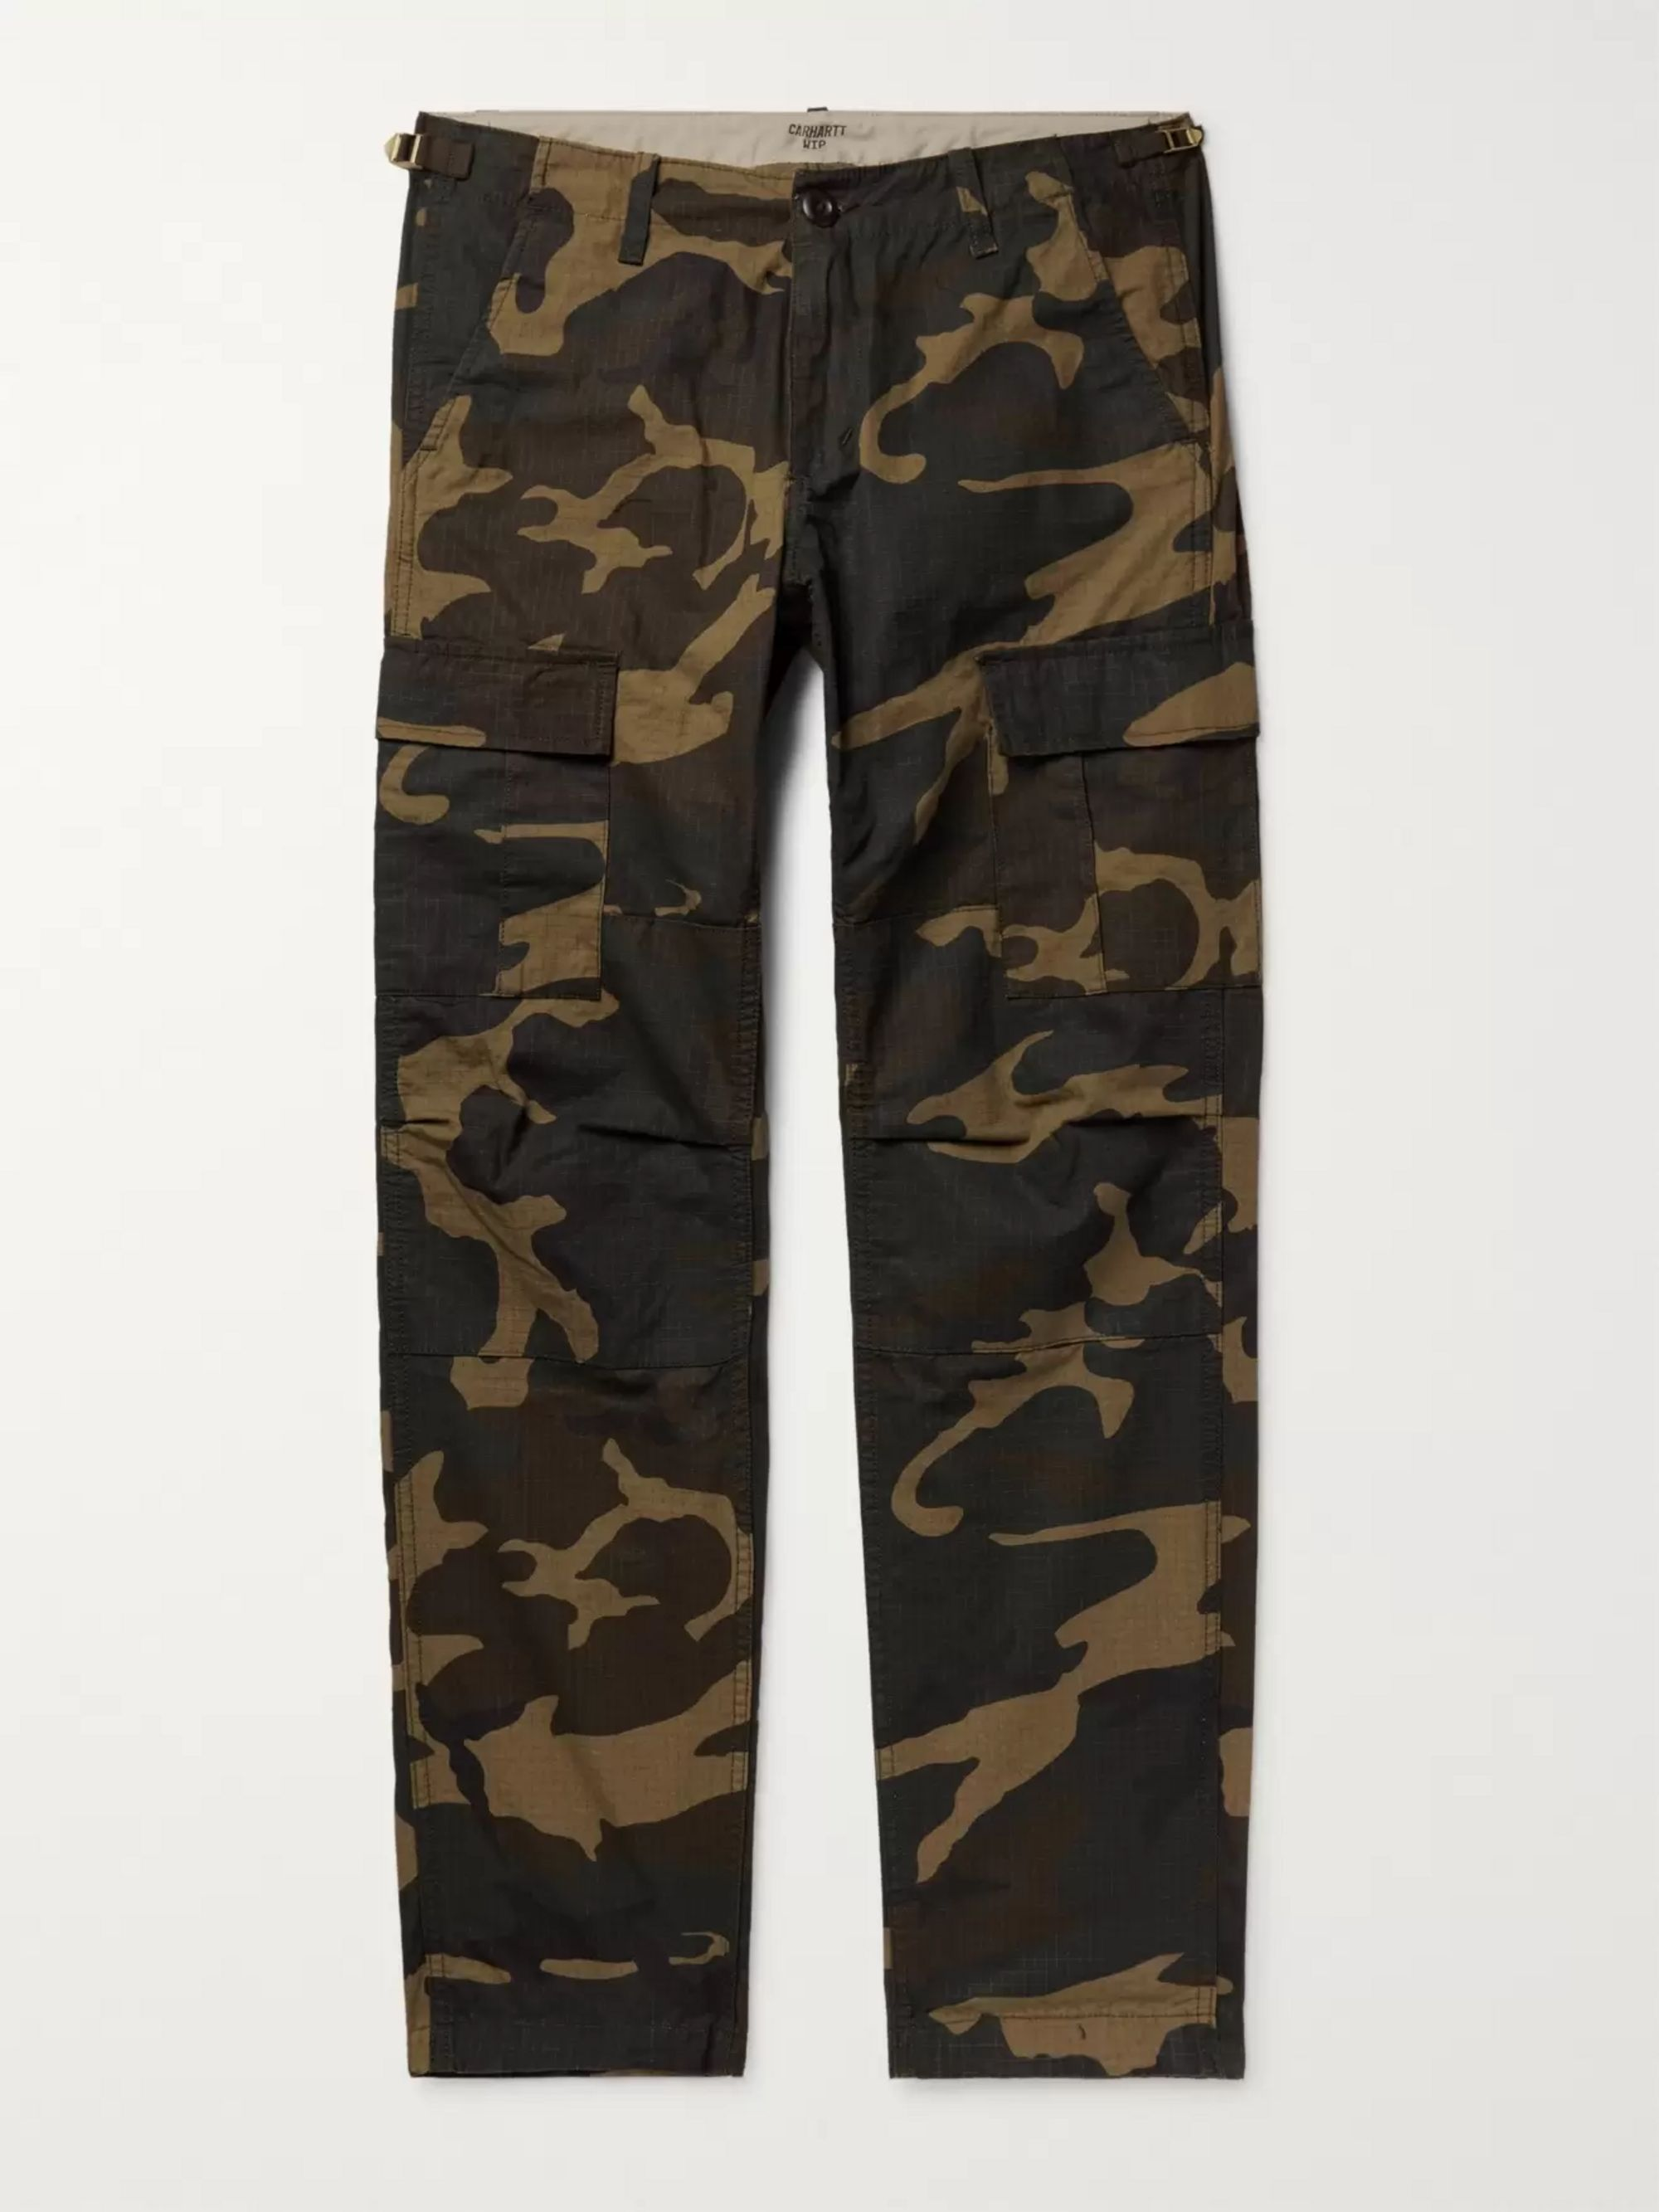 Aviation Slim Fit Printed Cotton Ripstop Cargo Trousers